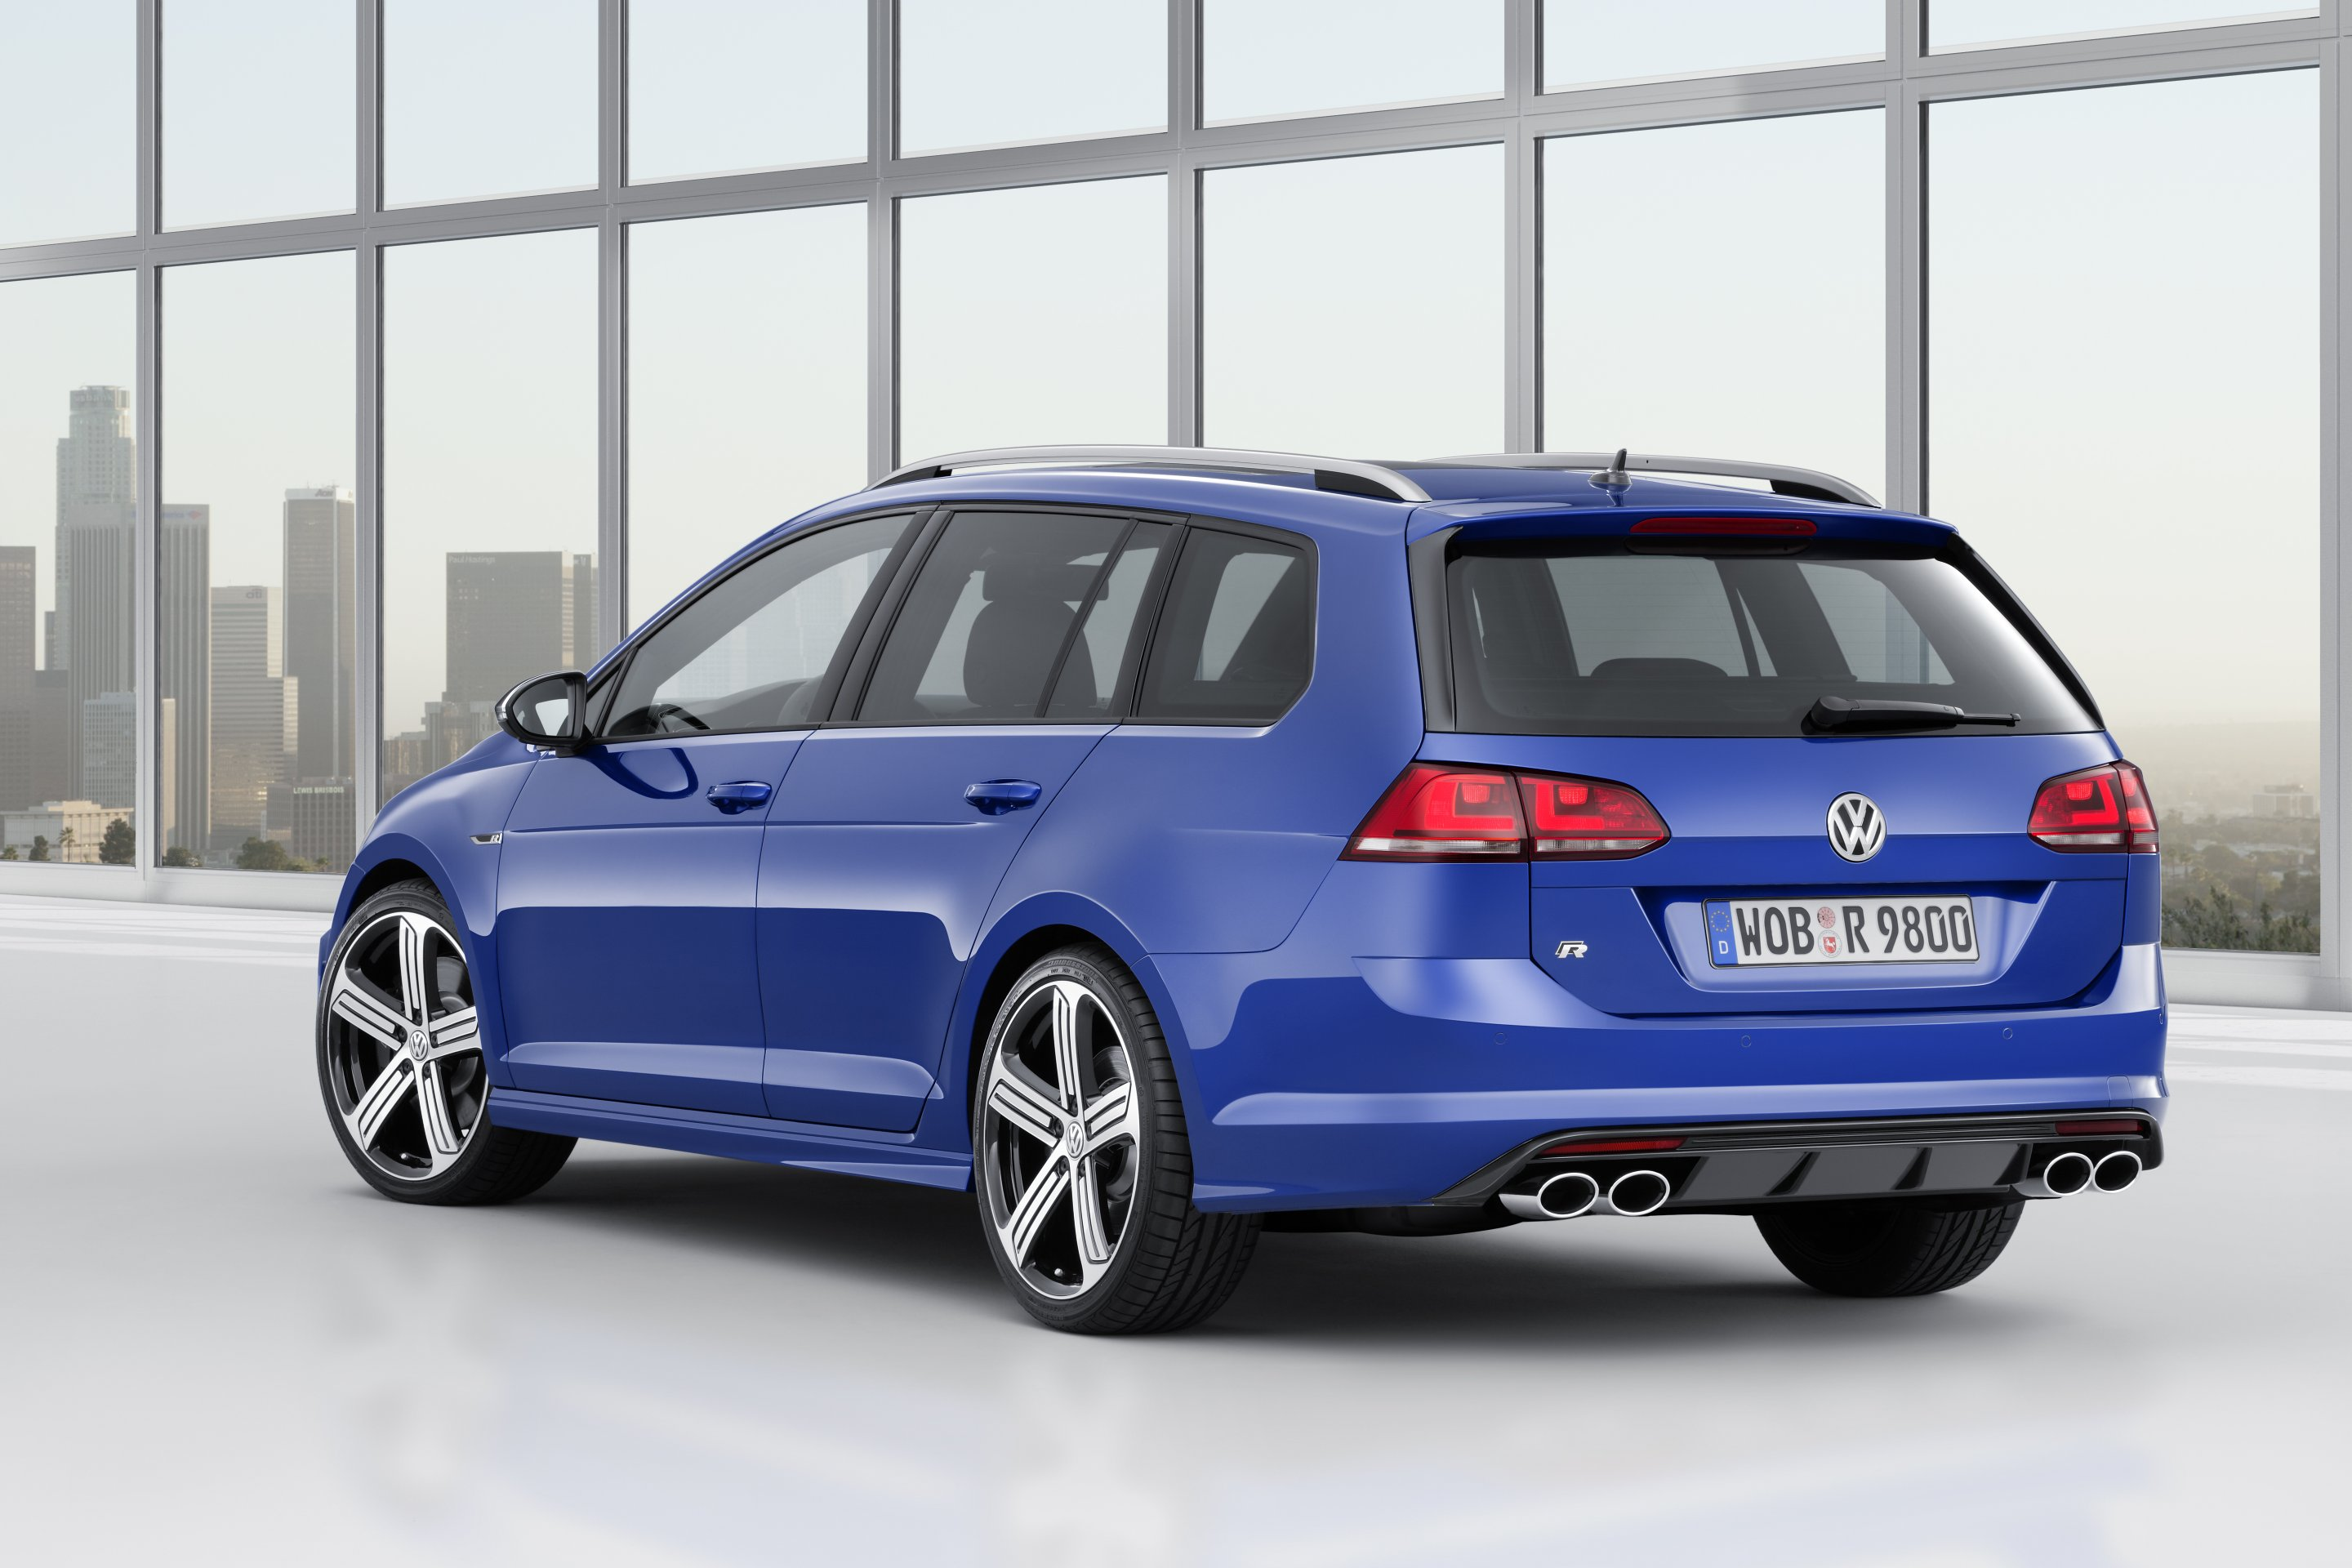 World Premiere Golf R Variant Top Model Of The Golf Line